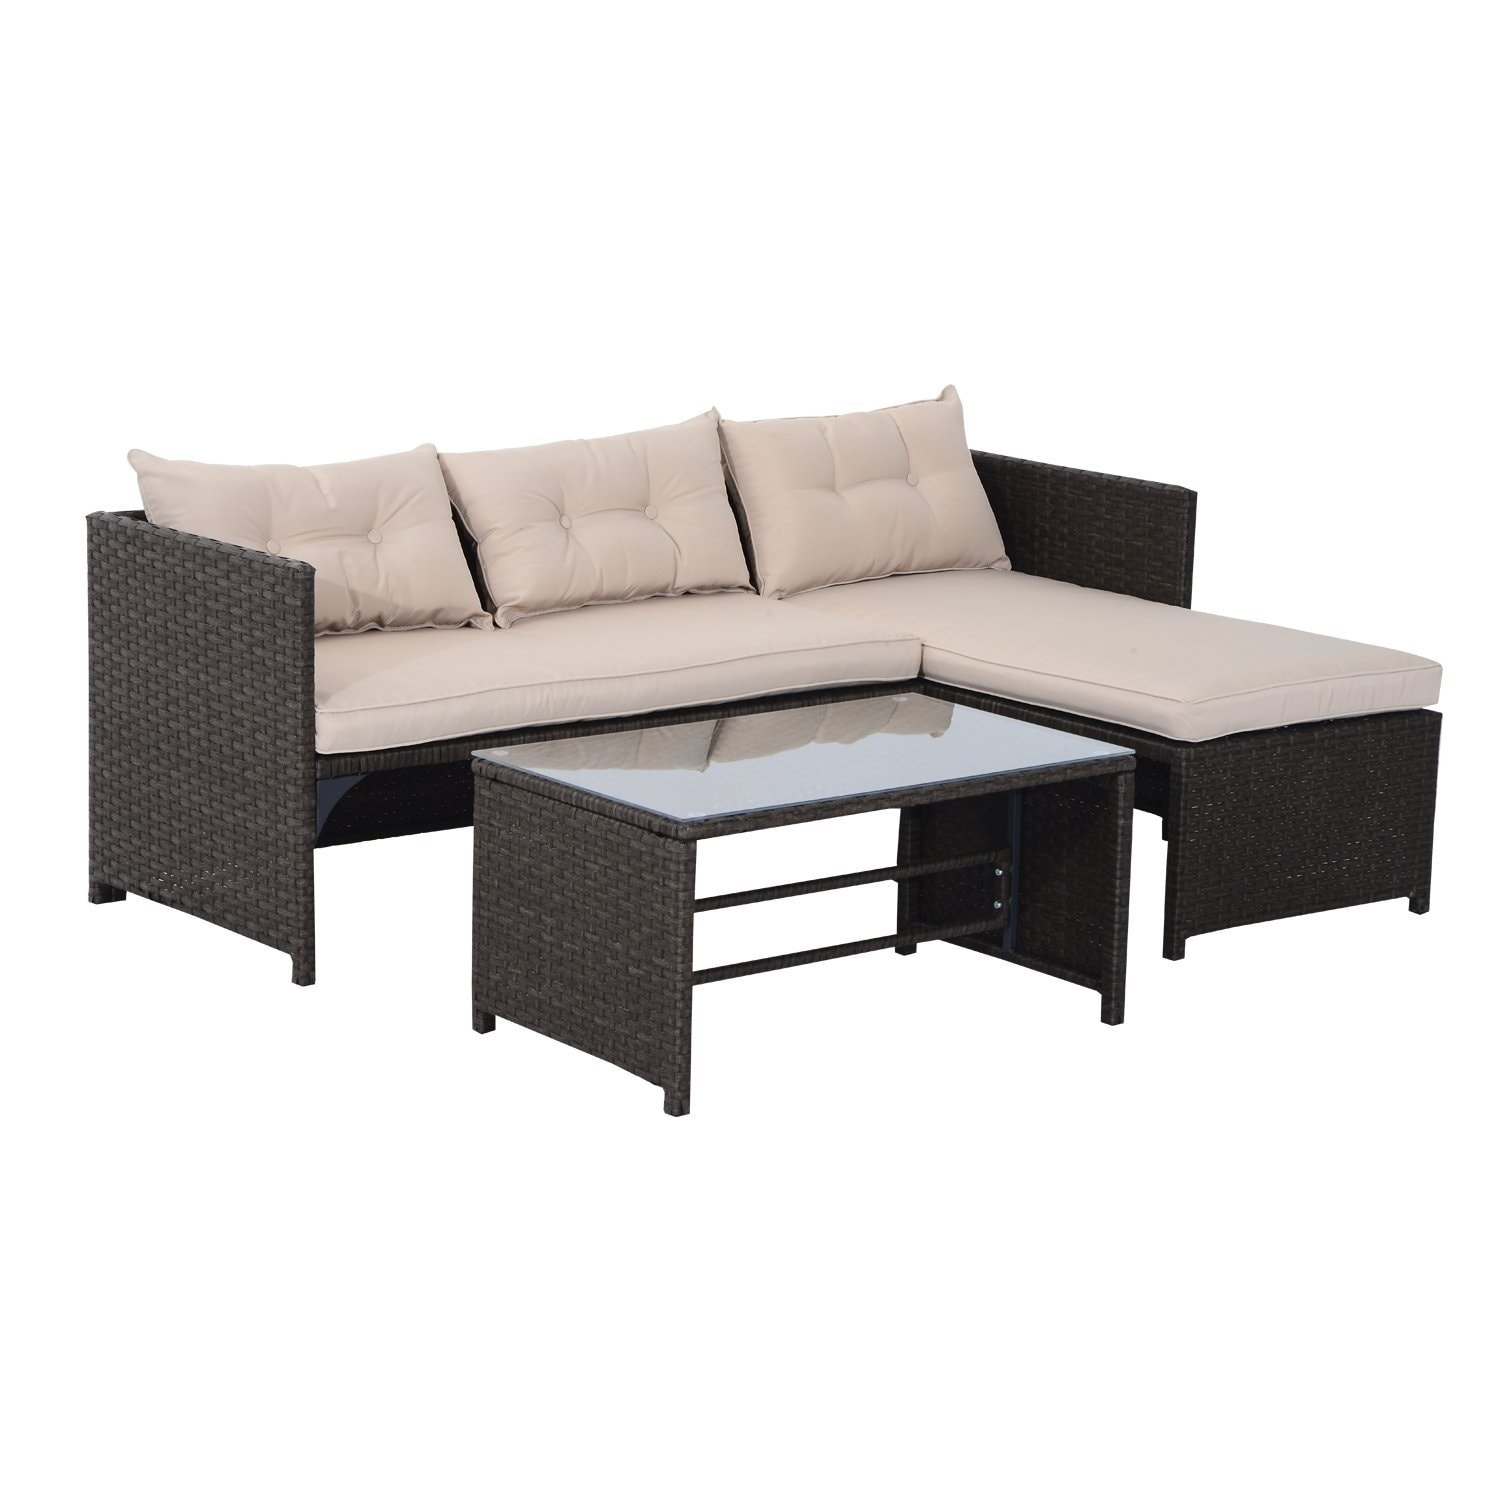 Sofa Rattan Outsunny Brown Tan Rattan Wicker 3 Piece Outdoor Patio Sofa And Chaise Lounge Set